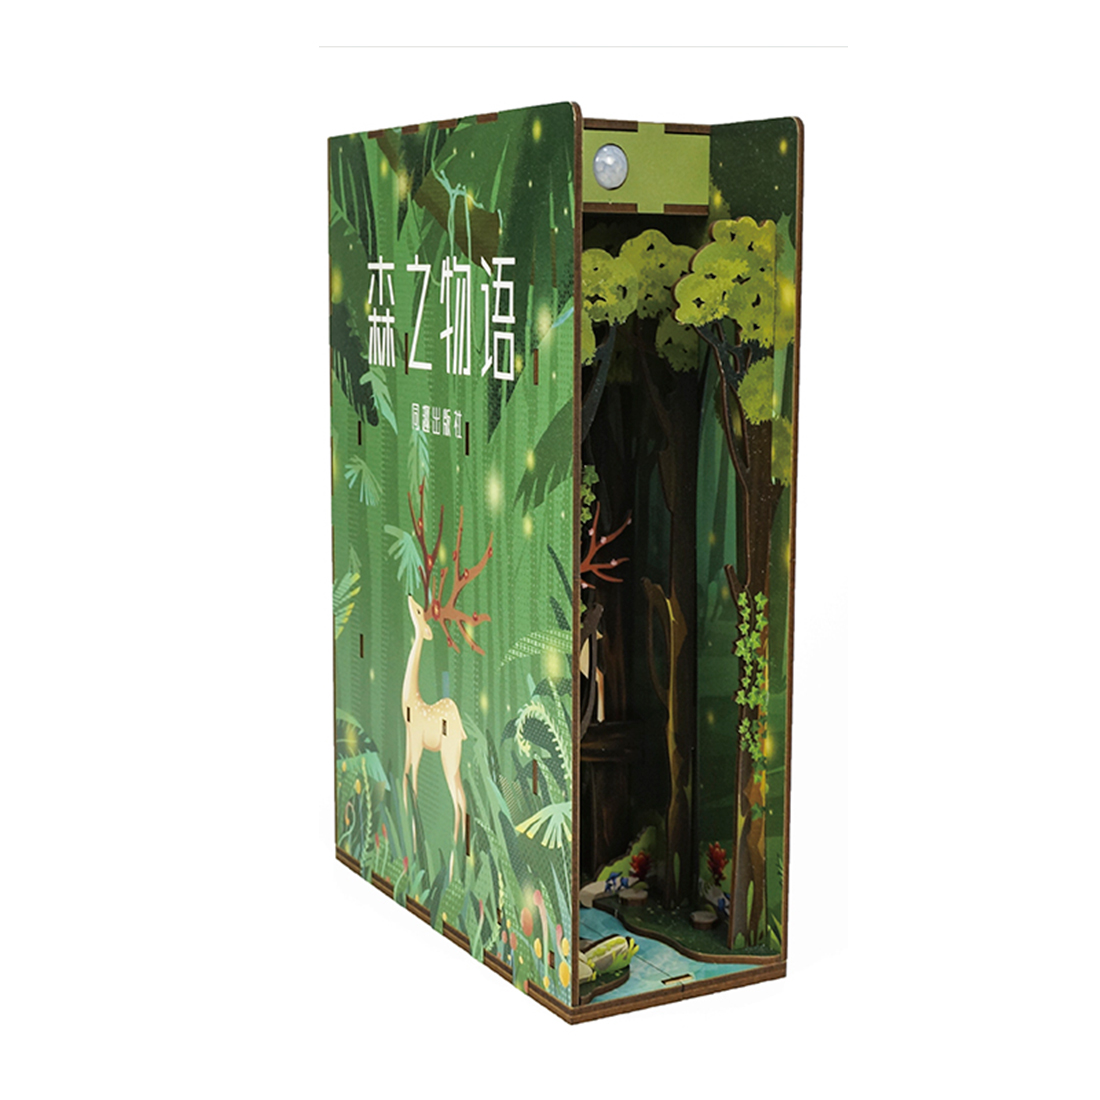 Story of Forest Miniature Book Nook * 3 Types